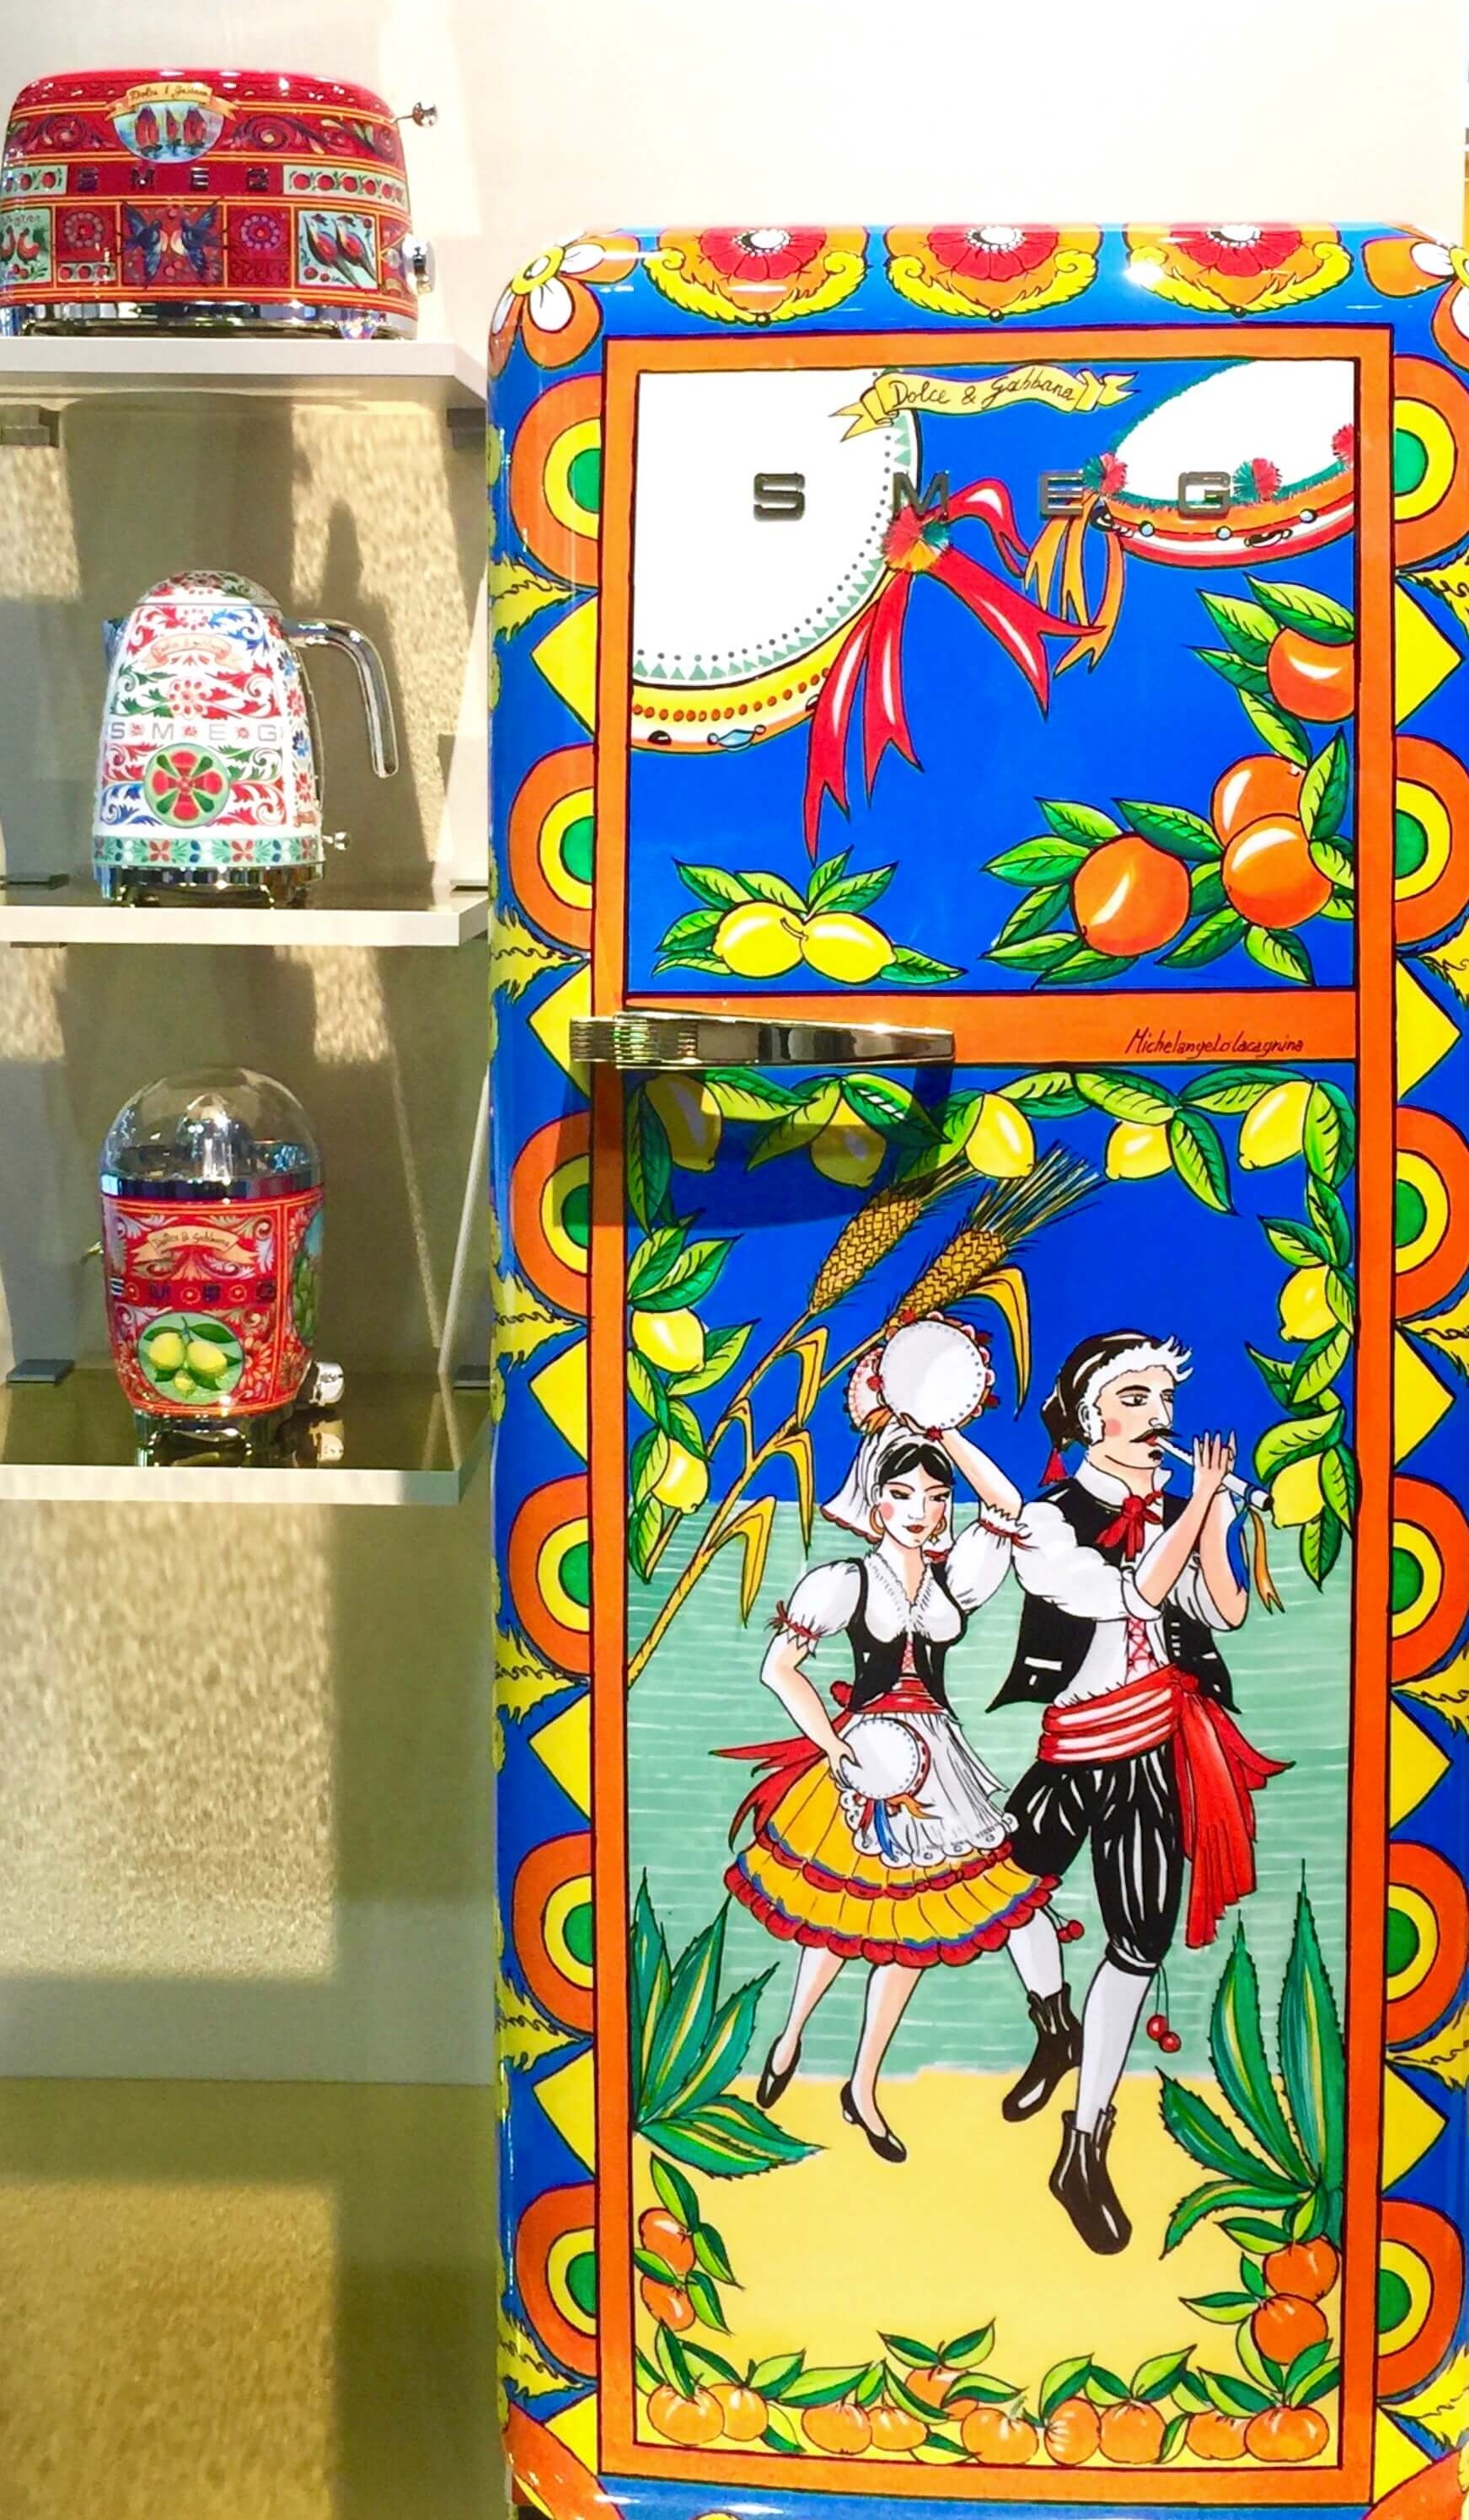 Smeg Fridge, by Dolce and Gabbana - KBIS, Kitchen and Bath Industry Show